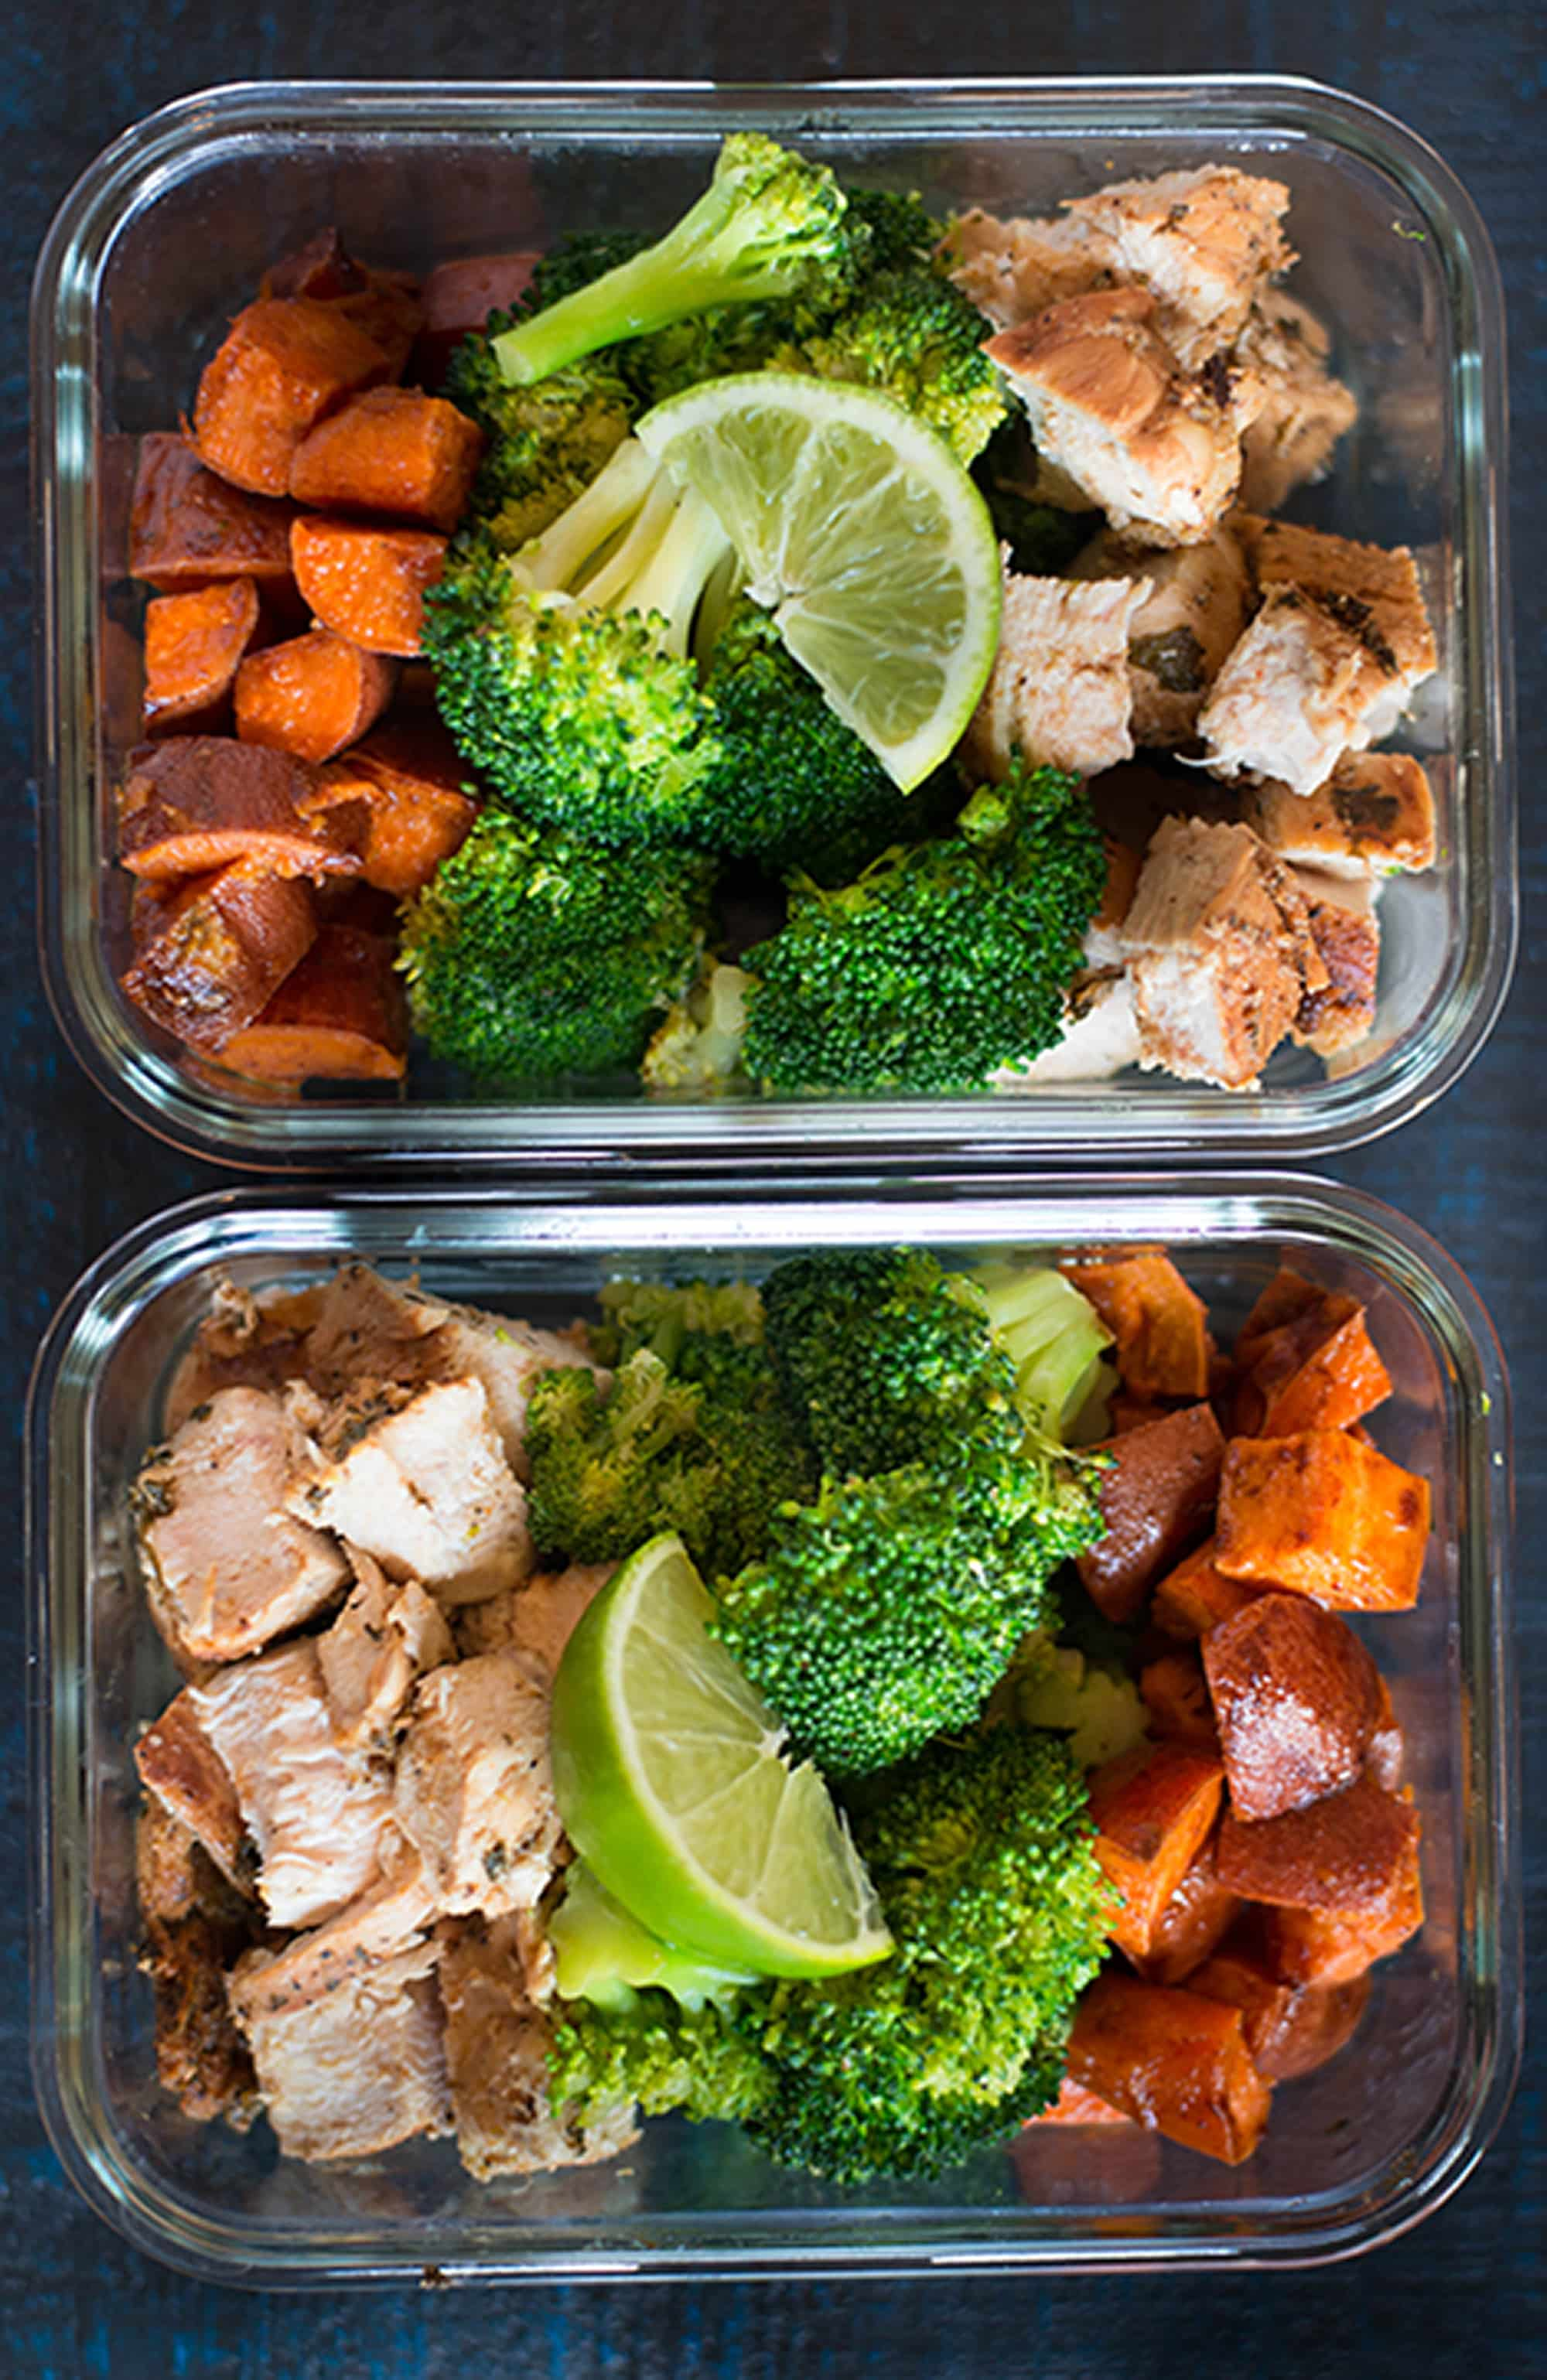 Overhead view of two meal prep containers containing meal prepped chicken, broccoli, and sweet potatoes, to show how to meal prep chicken.